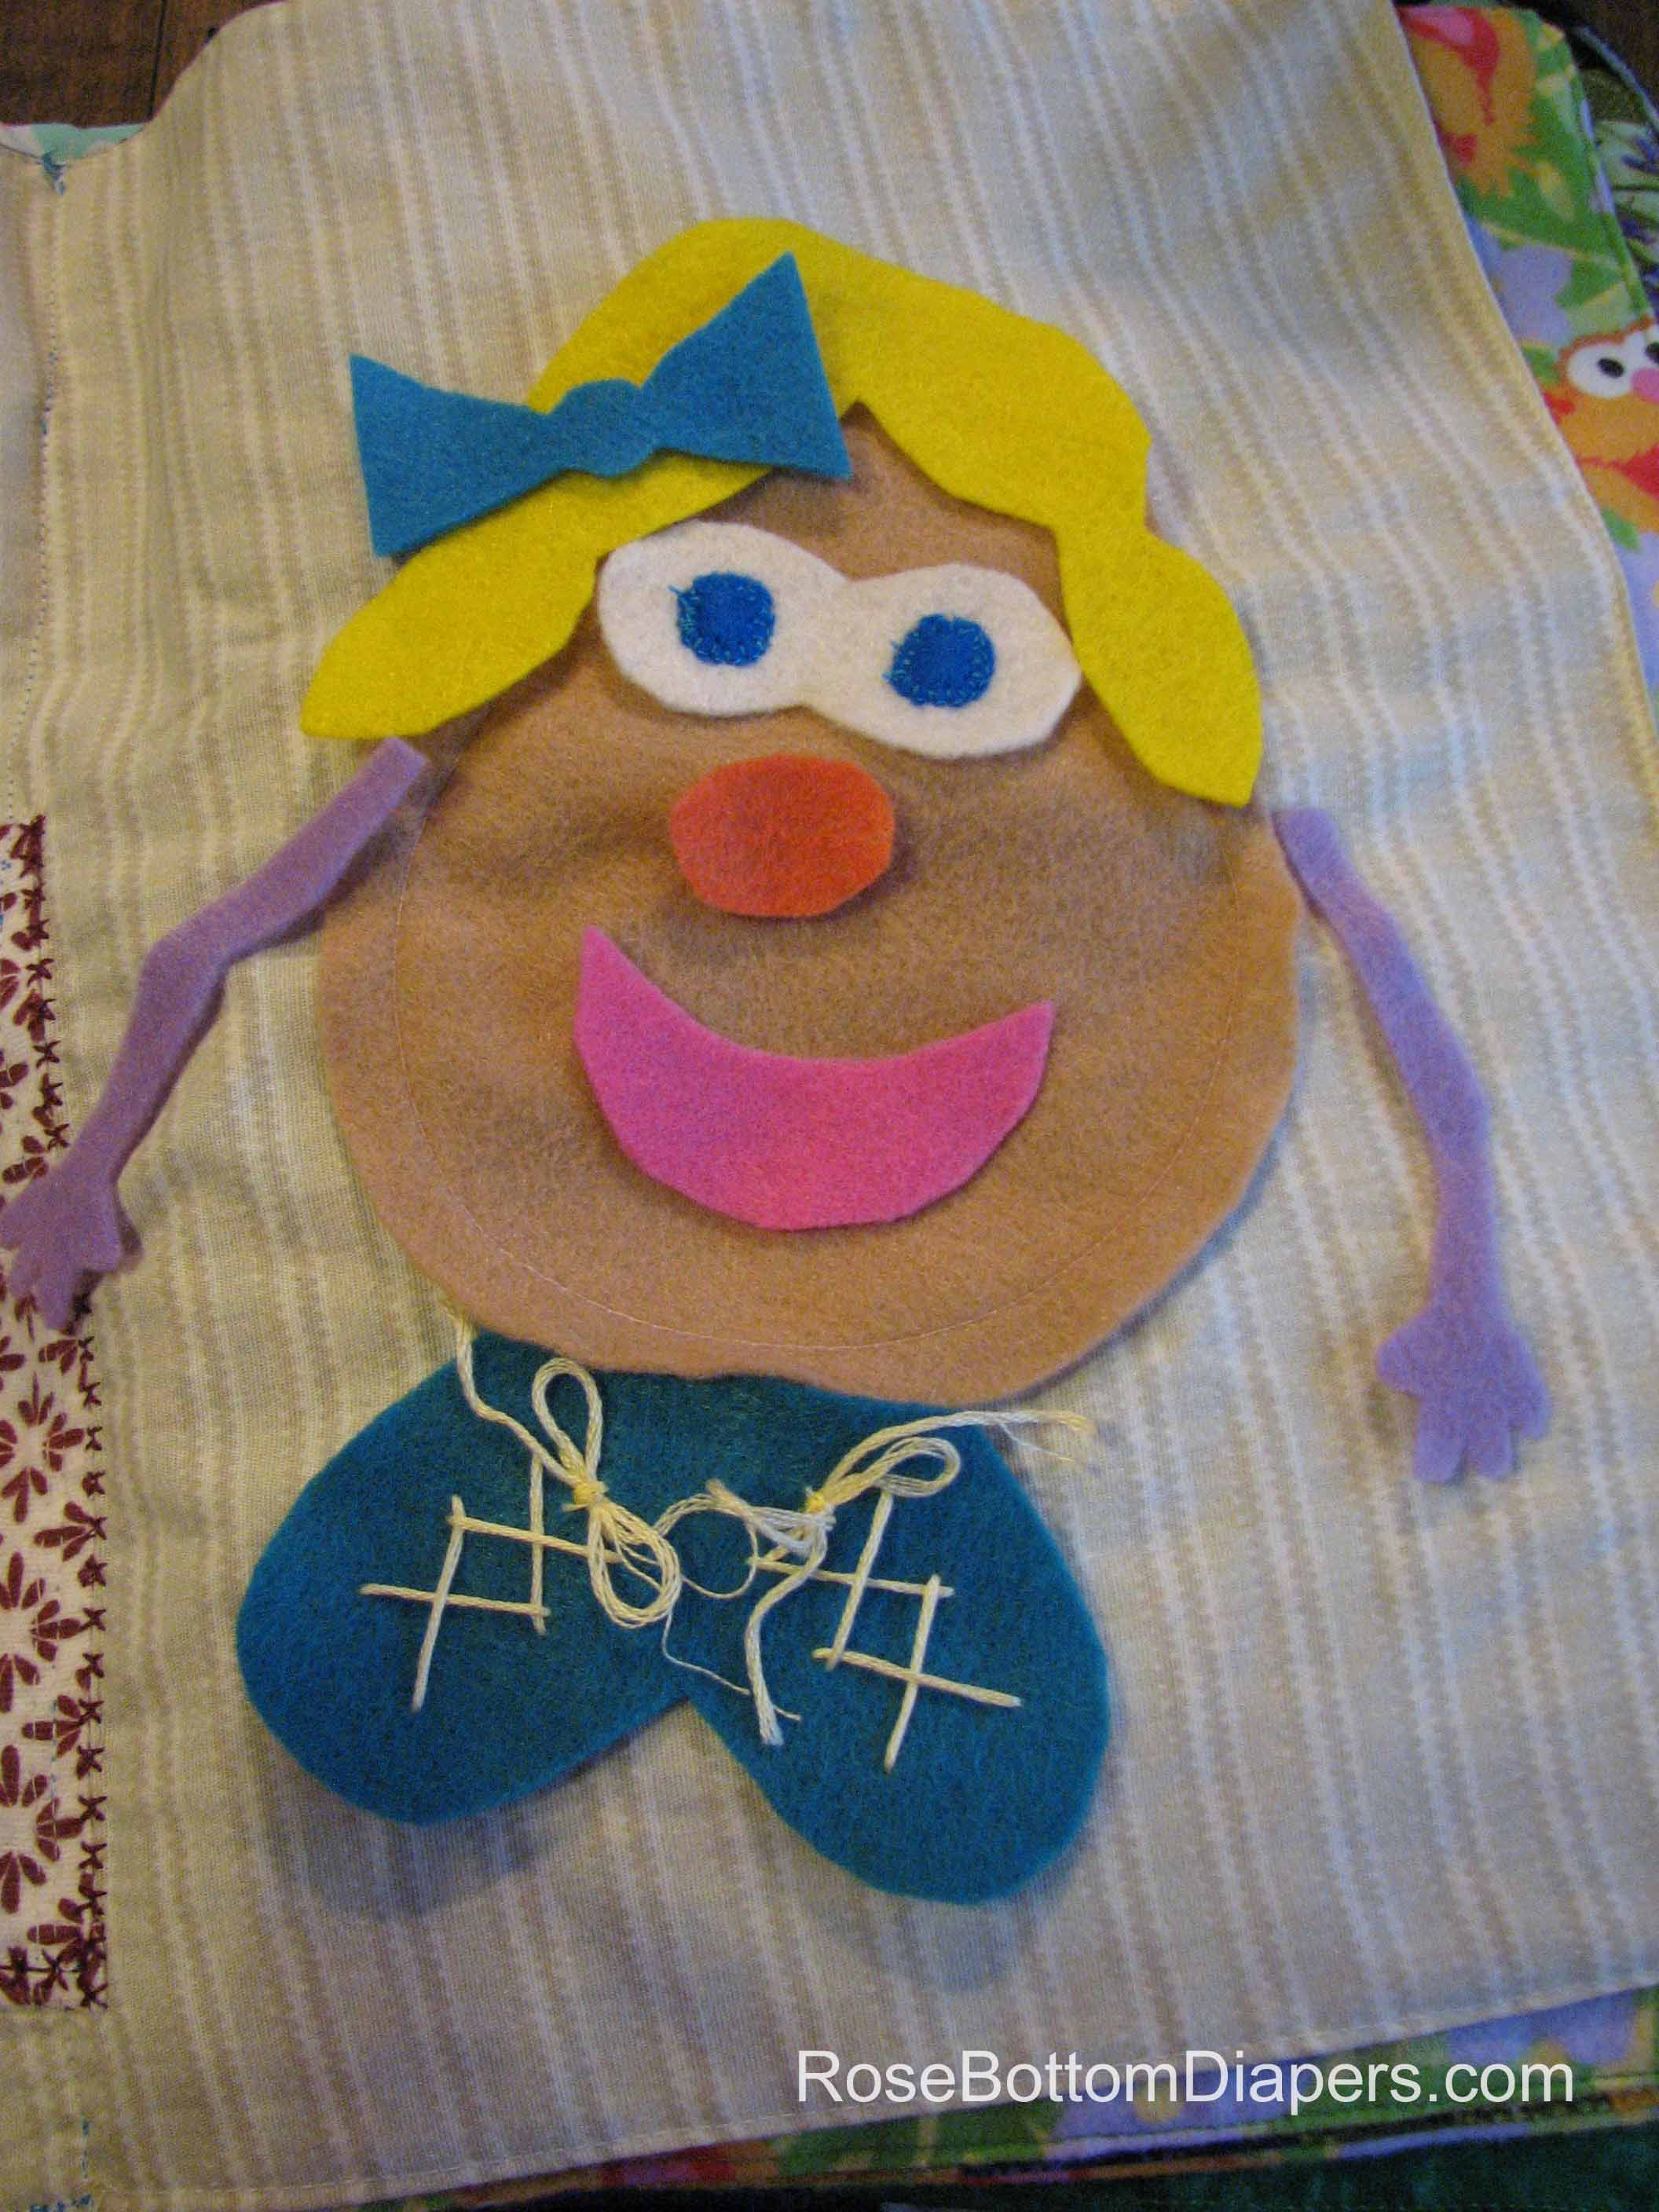 Mrs. Potato Head quiet book page.  Fun learning for kids. Busy book ideas at RoseBottomDiapers.com